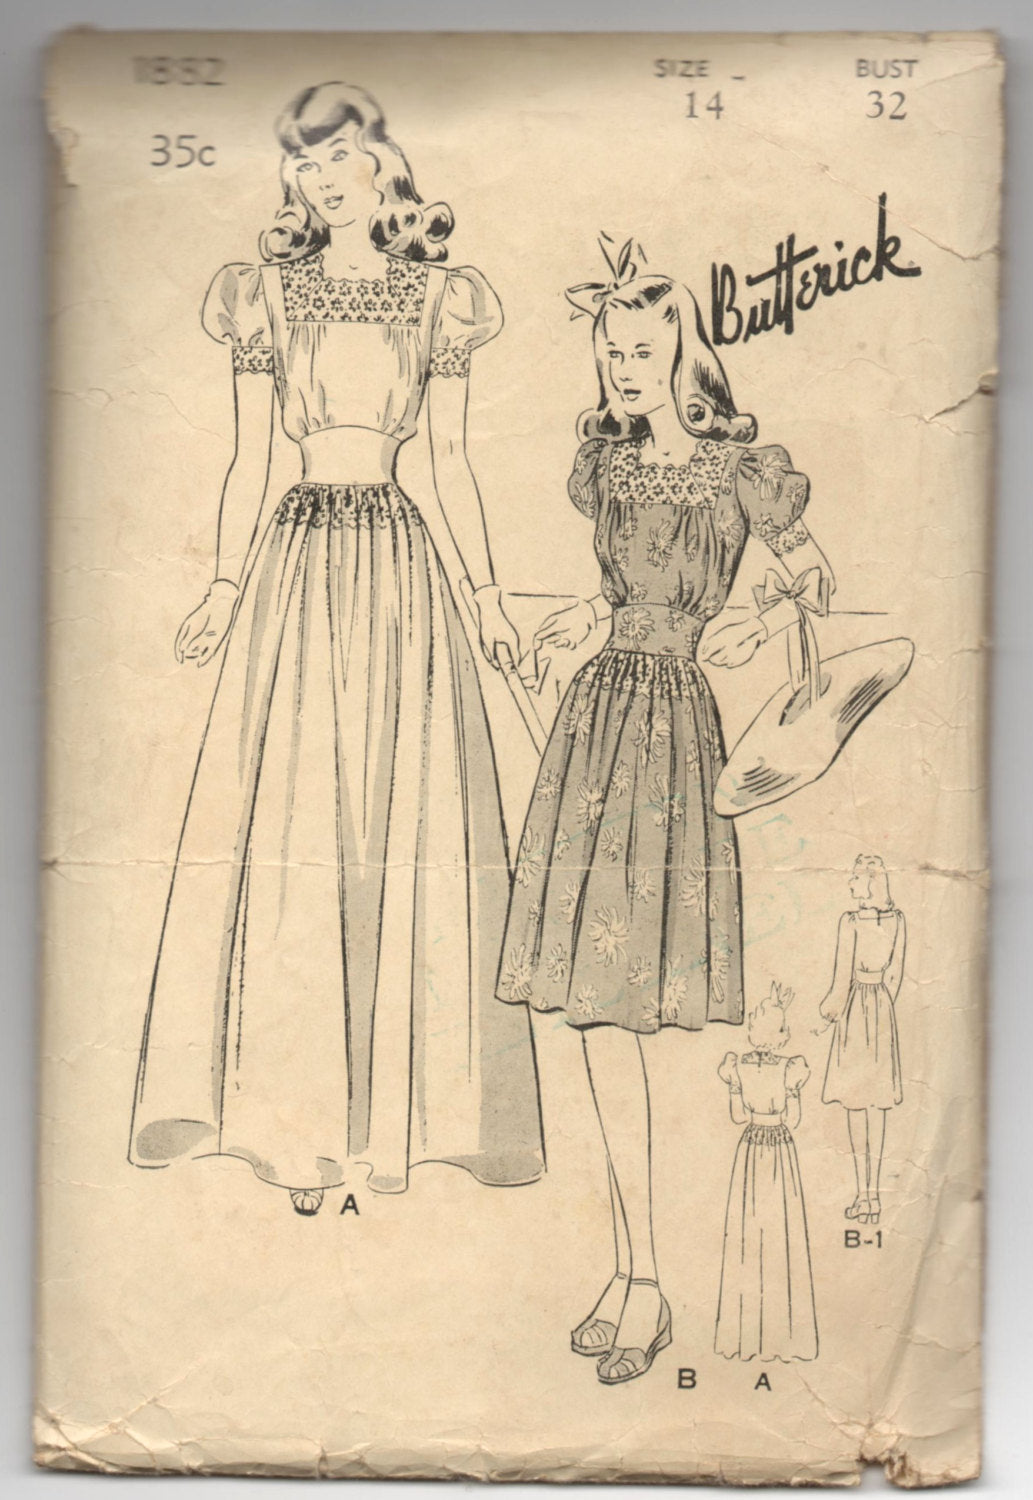 1940's Butterick One-Piece Dress Pattern for Graduation or Party - Bust 32